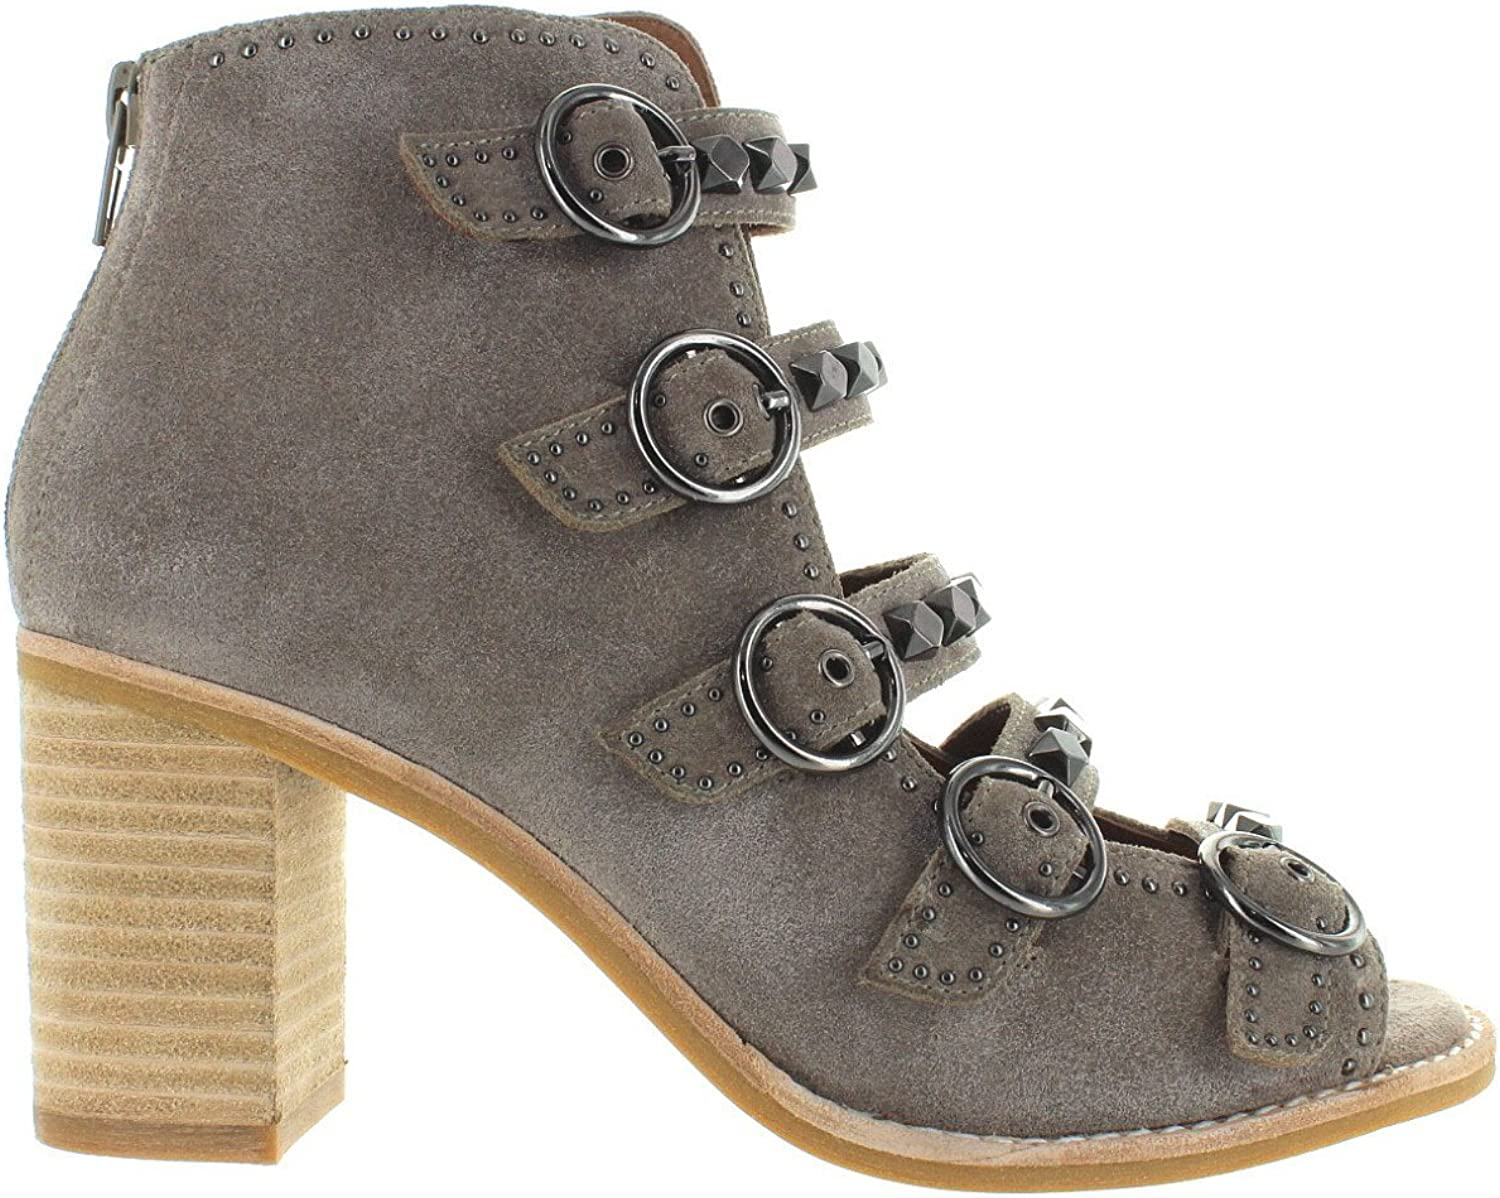 Jeffrey Campbell Bess - Taupe Suede Studded Strappy Sandal Bootie